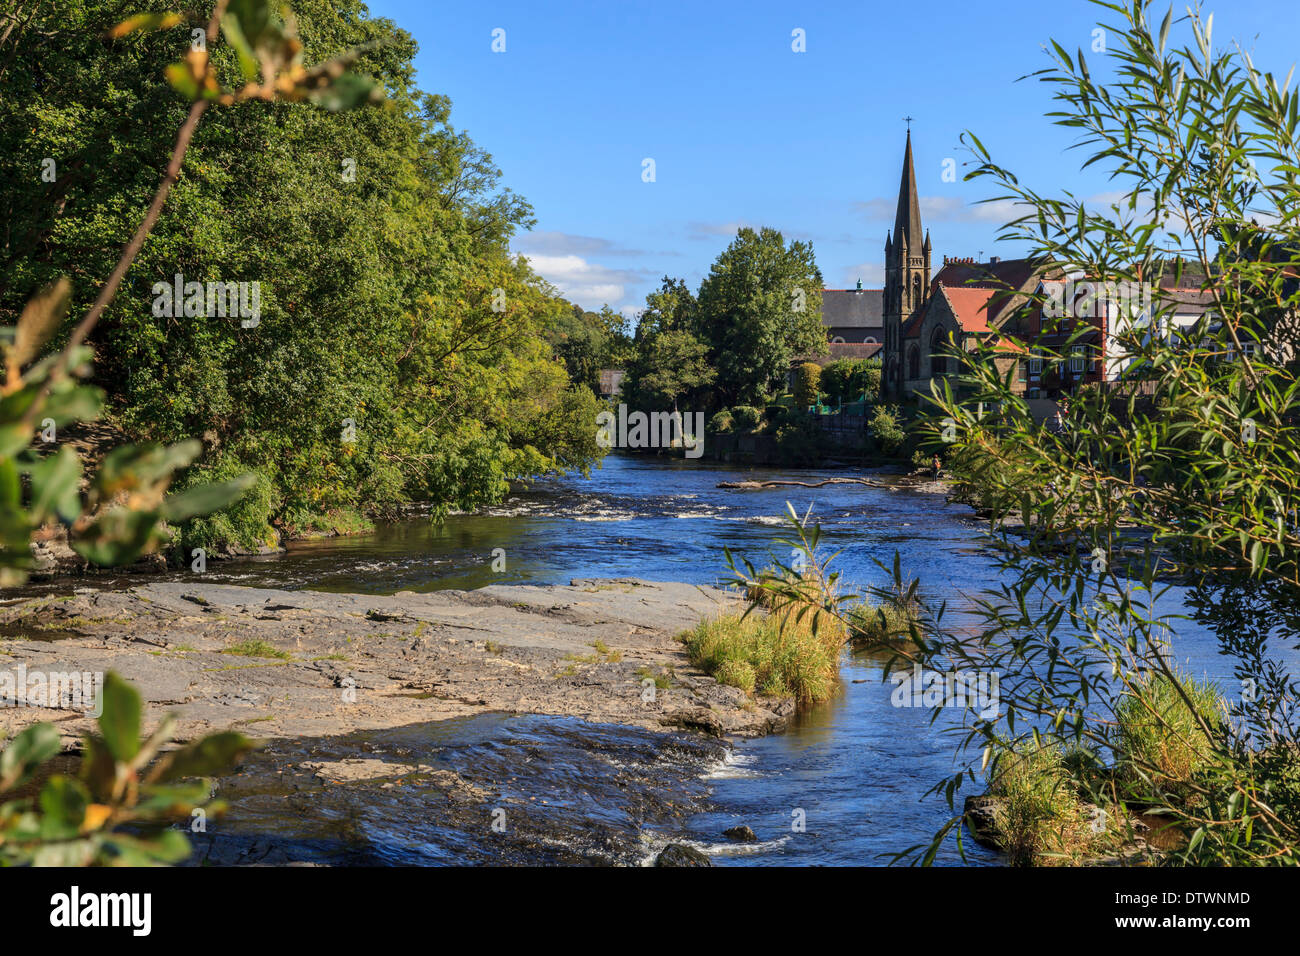 The River Dee as it flows through Llangollen. Stock Photo